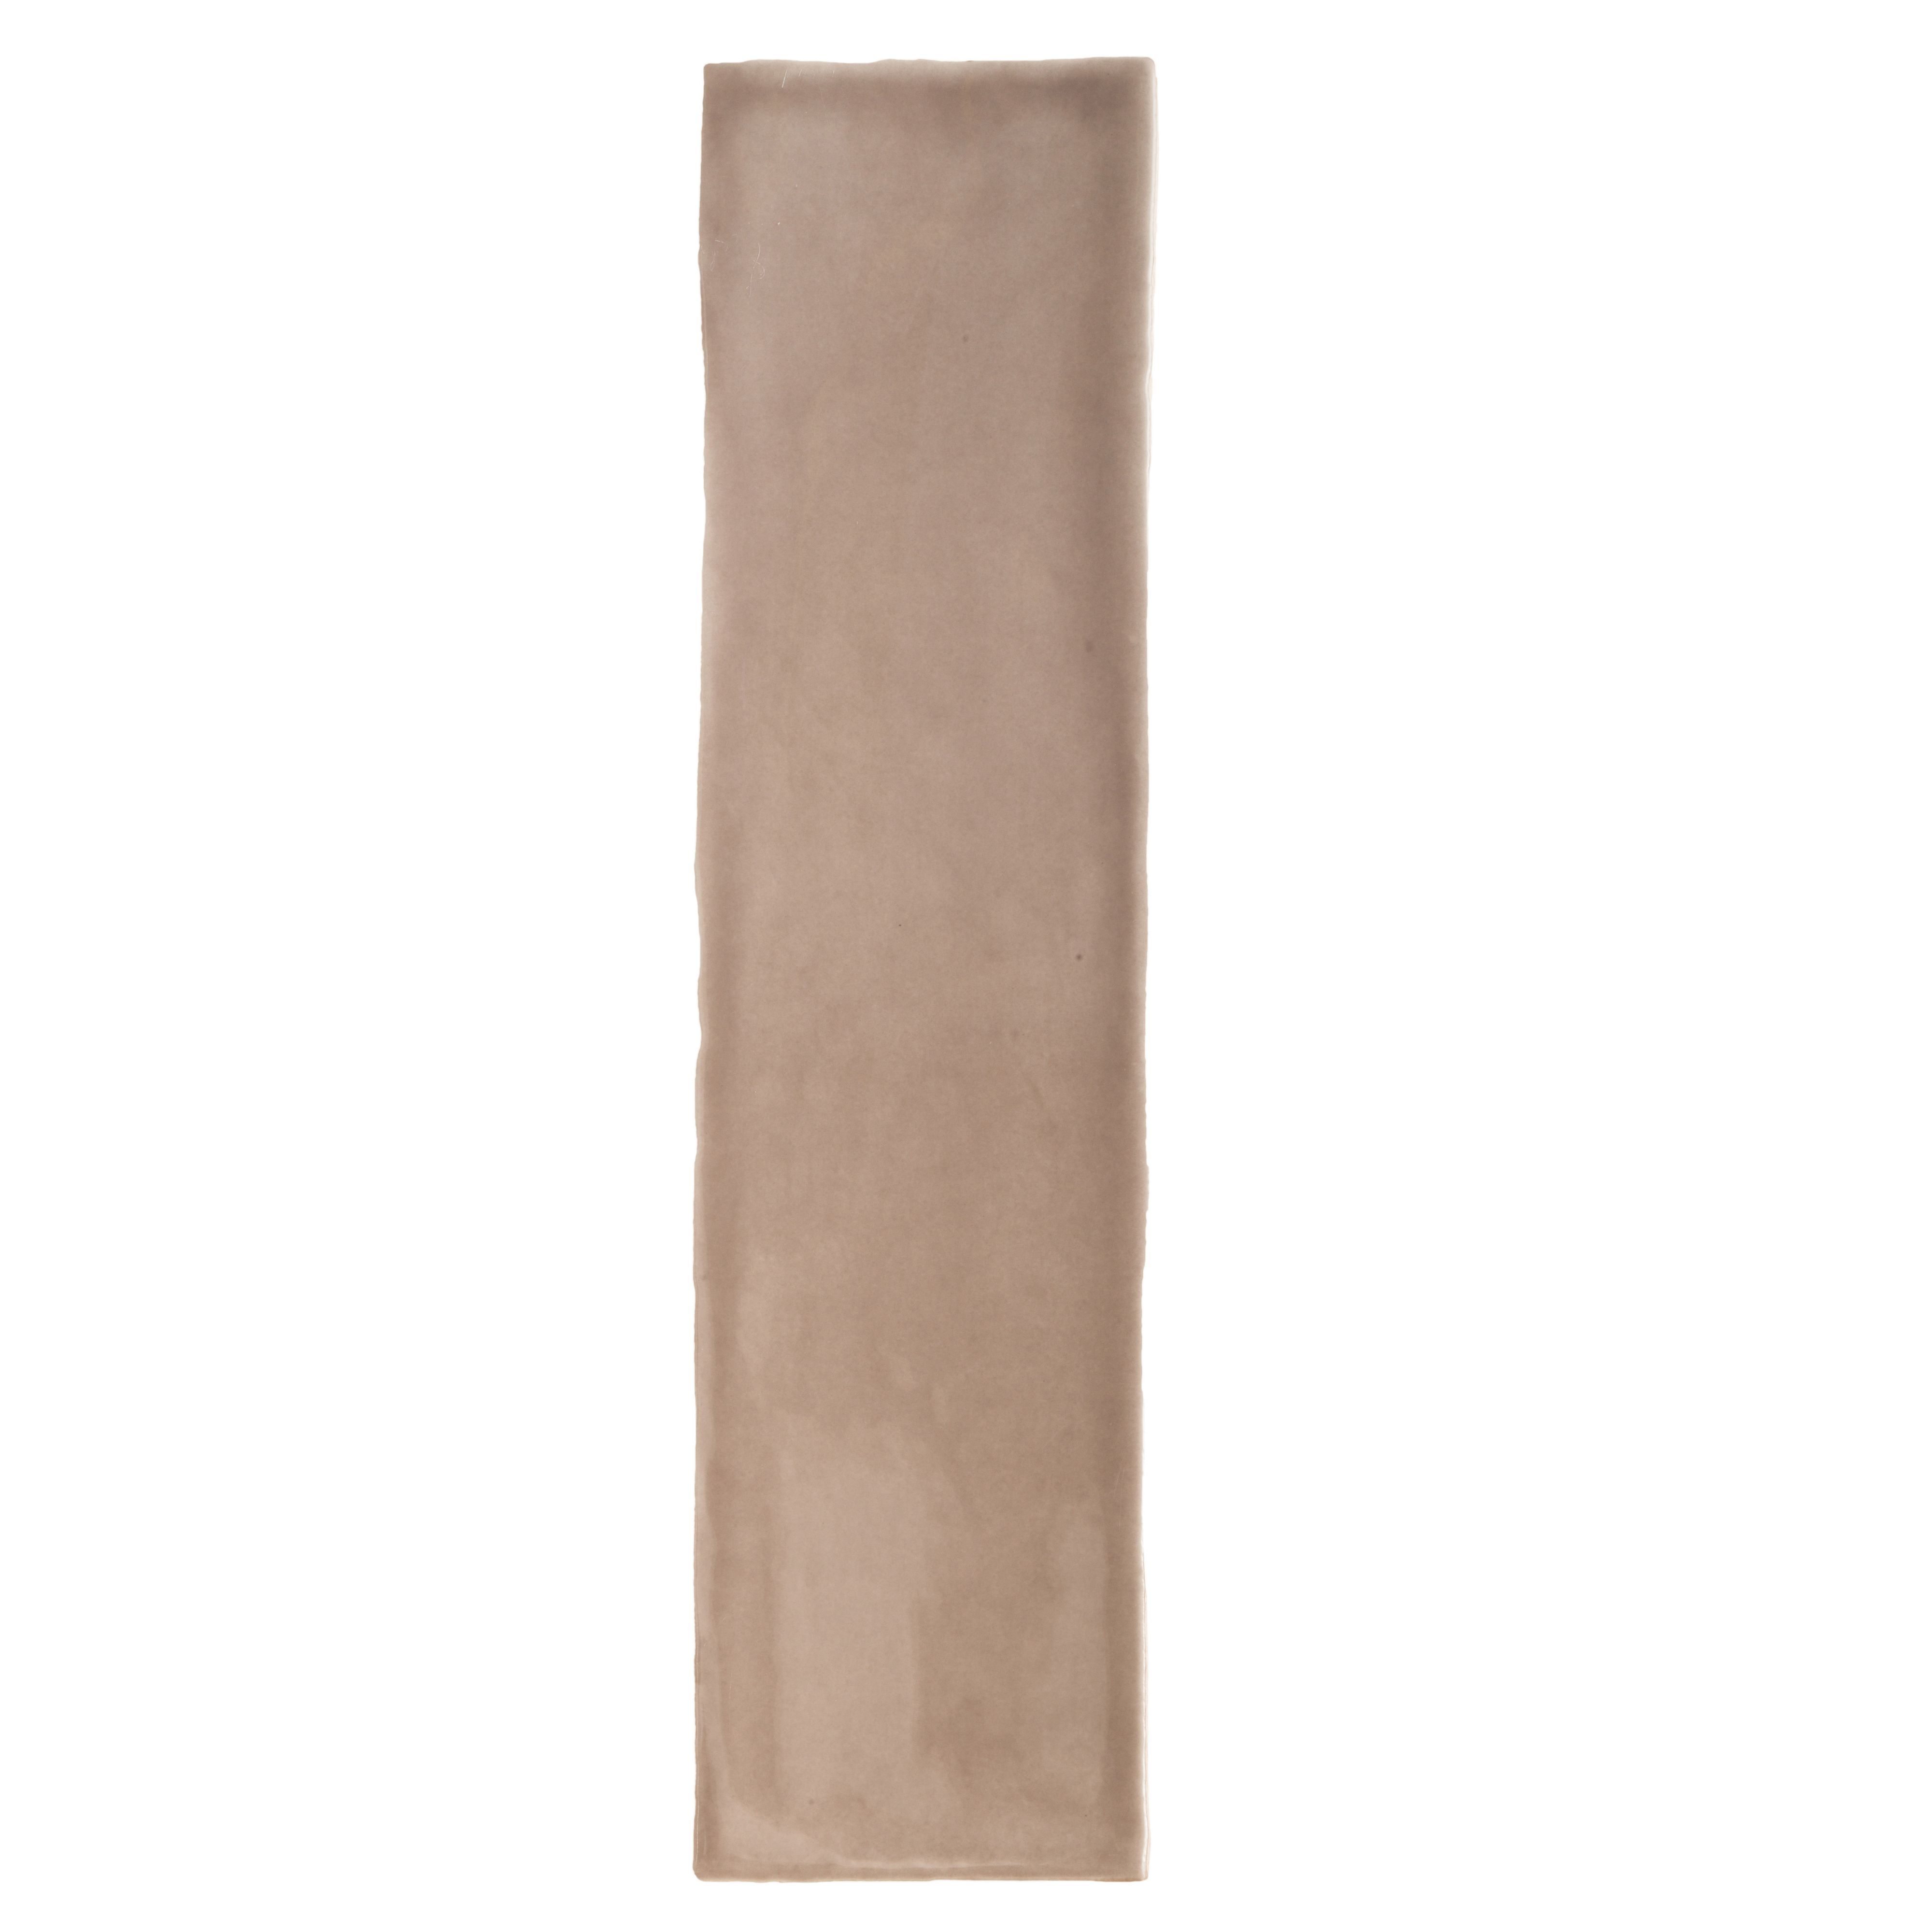 Padstow Taupe Ceramic Wall Tile, Pack Of 22, (l)300mm (w)75mm